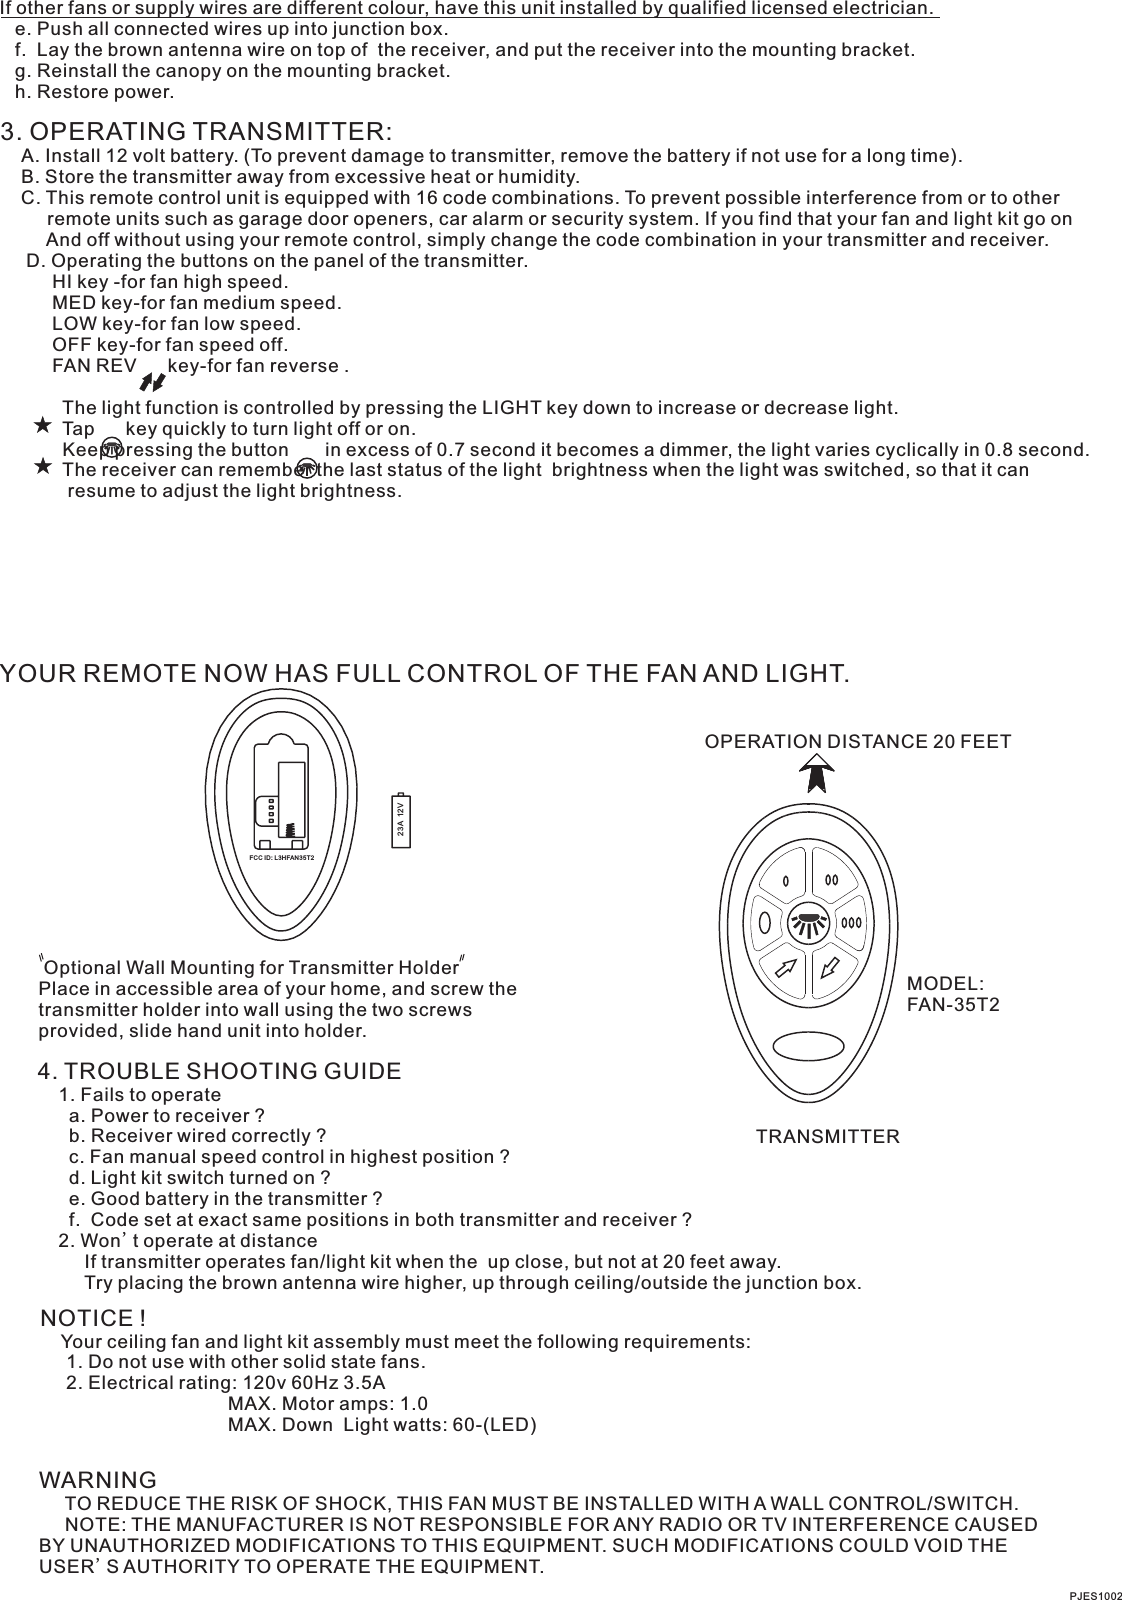 Race Car Electrical Panel Overview Manual Guide